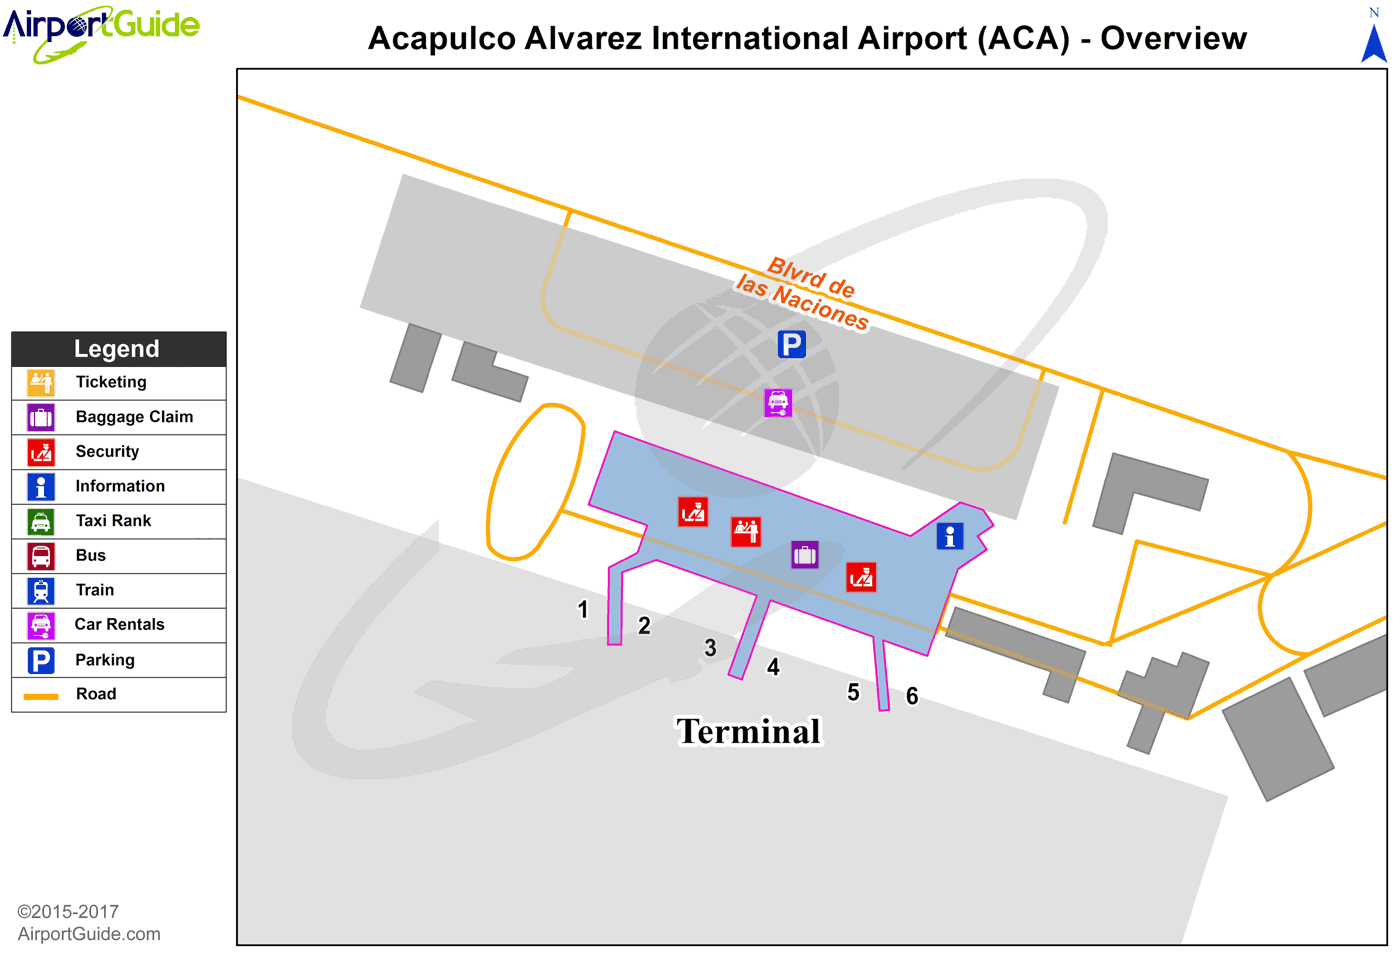 Acapulco - General Juan N Alvarez International (ACA) Airport Terminal Map - Overview